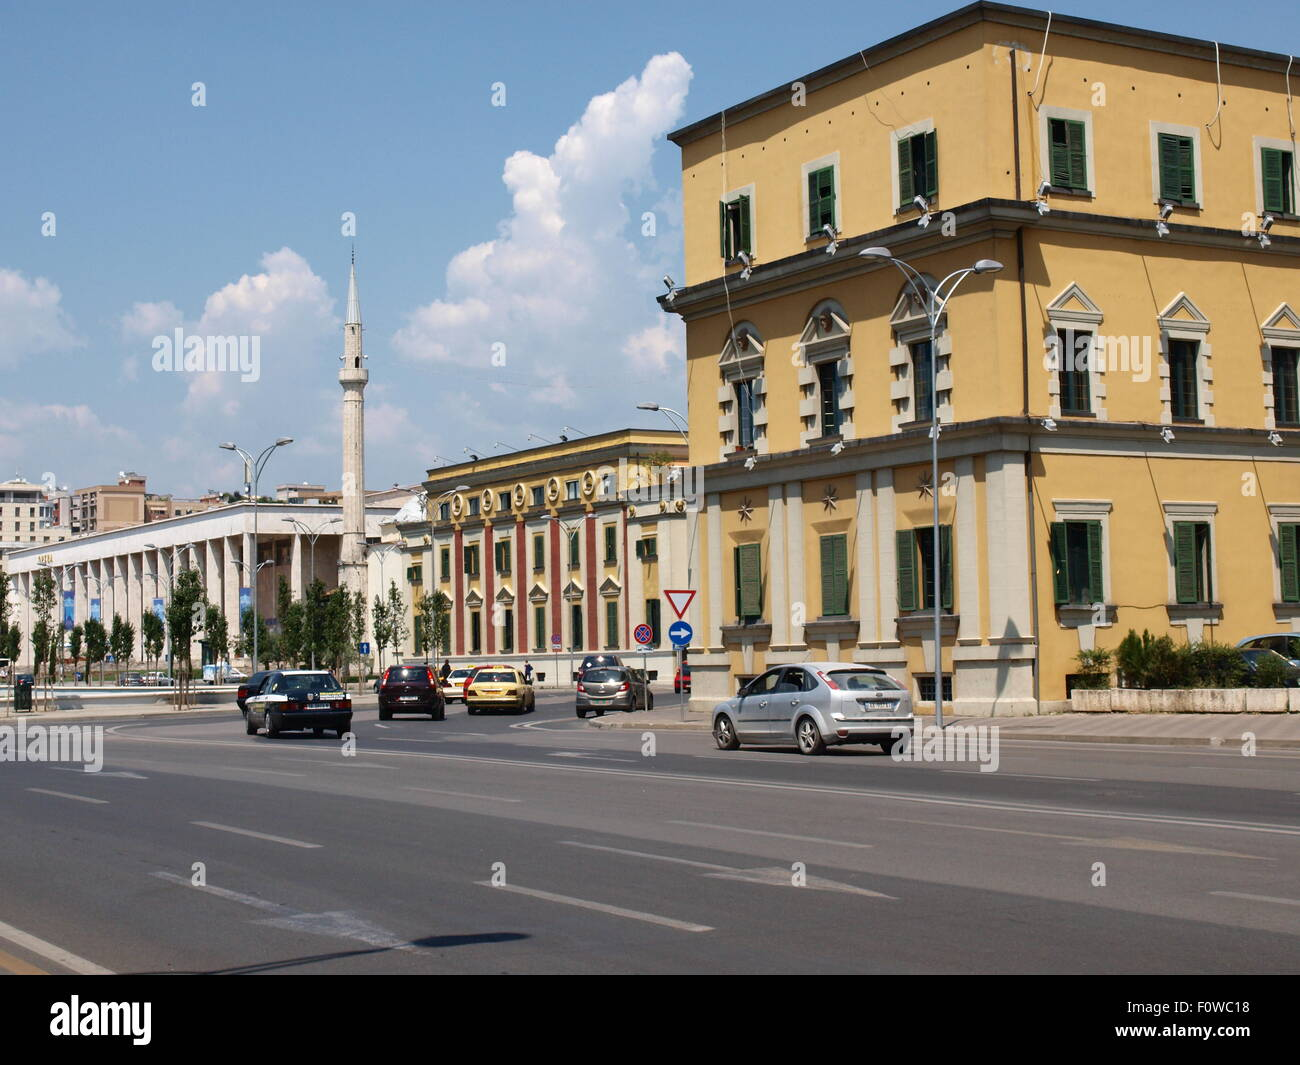 Tirana, Albania. Government buildings on the main street of the city. - Stock Image